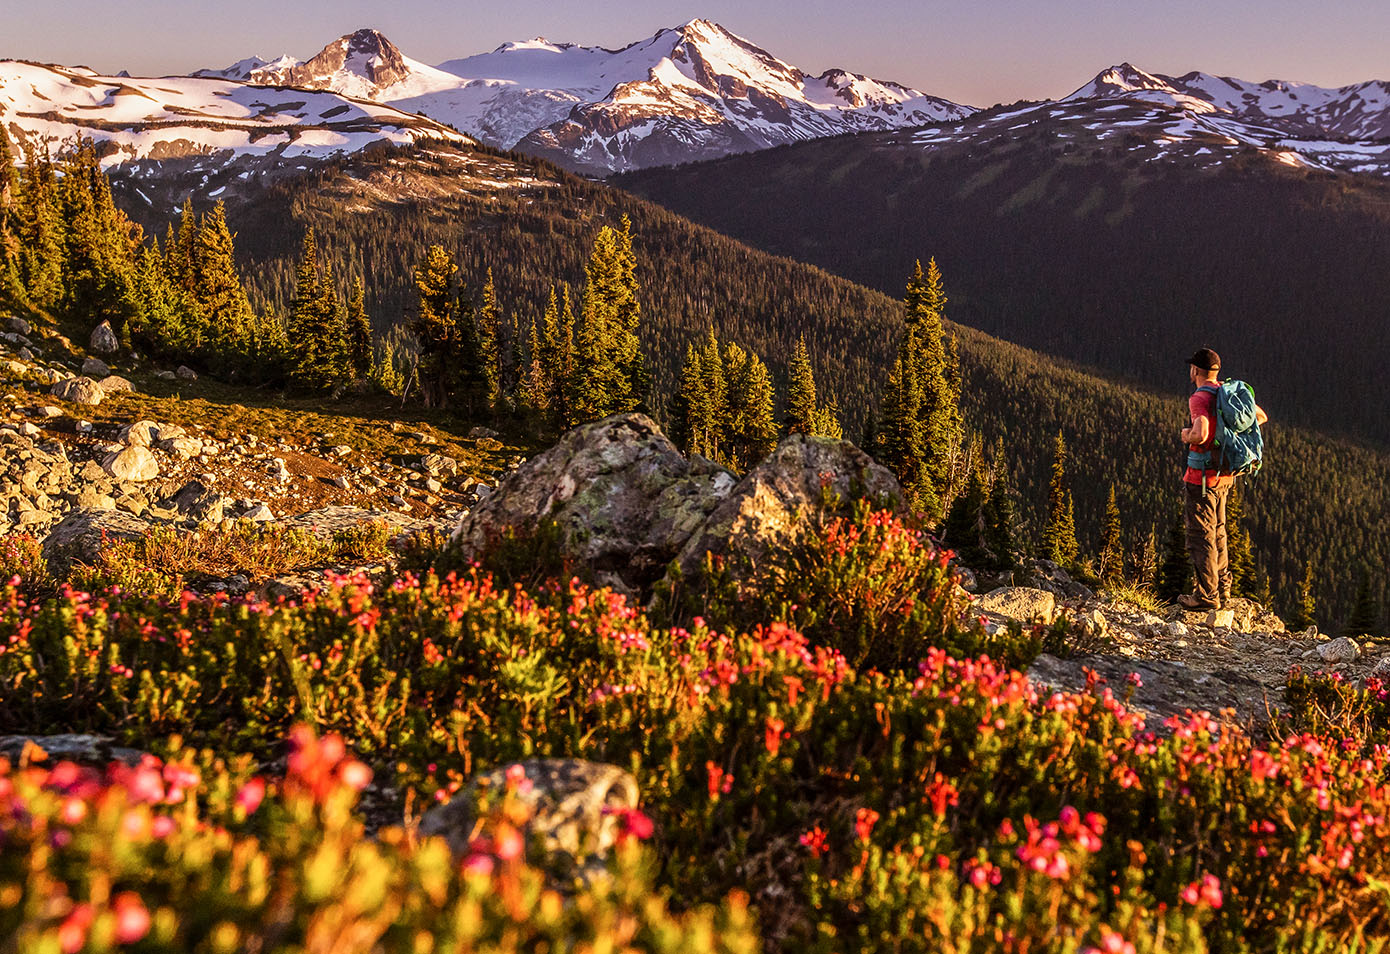 Hiking in Whistler | Image: Tourism Whistler, Mitch Winton